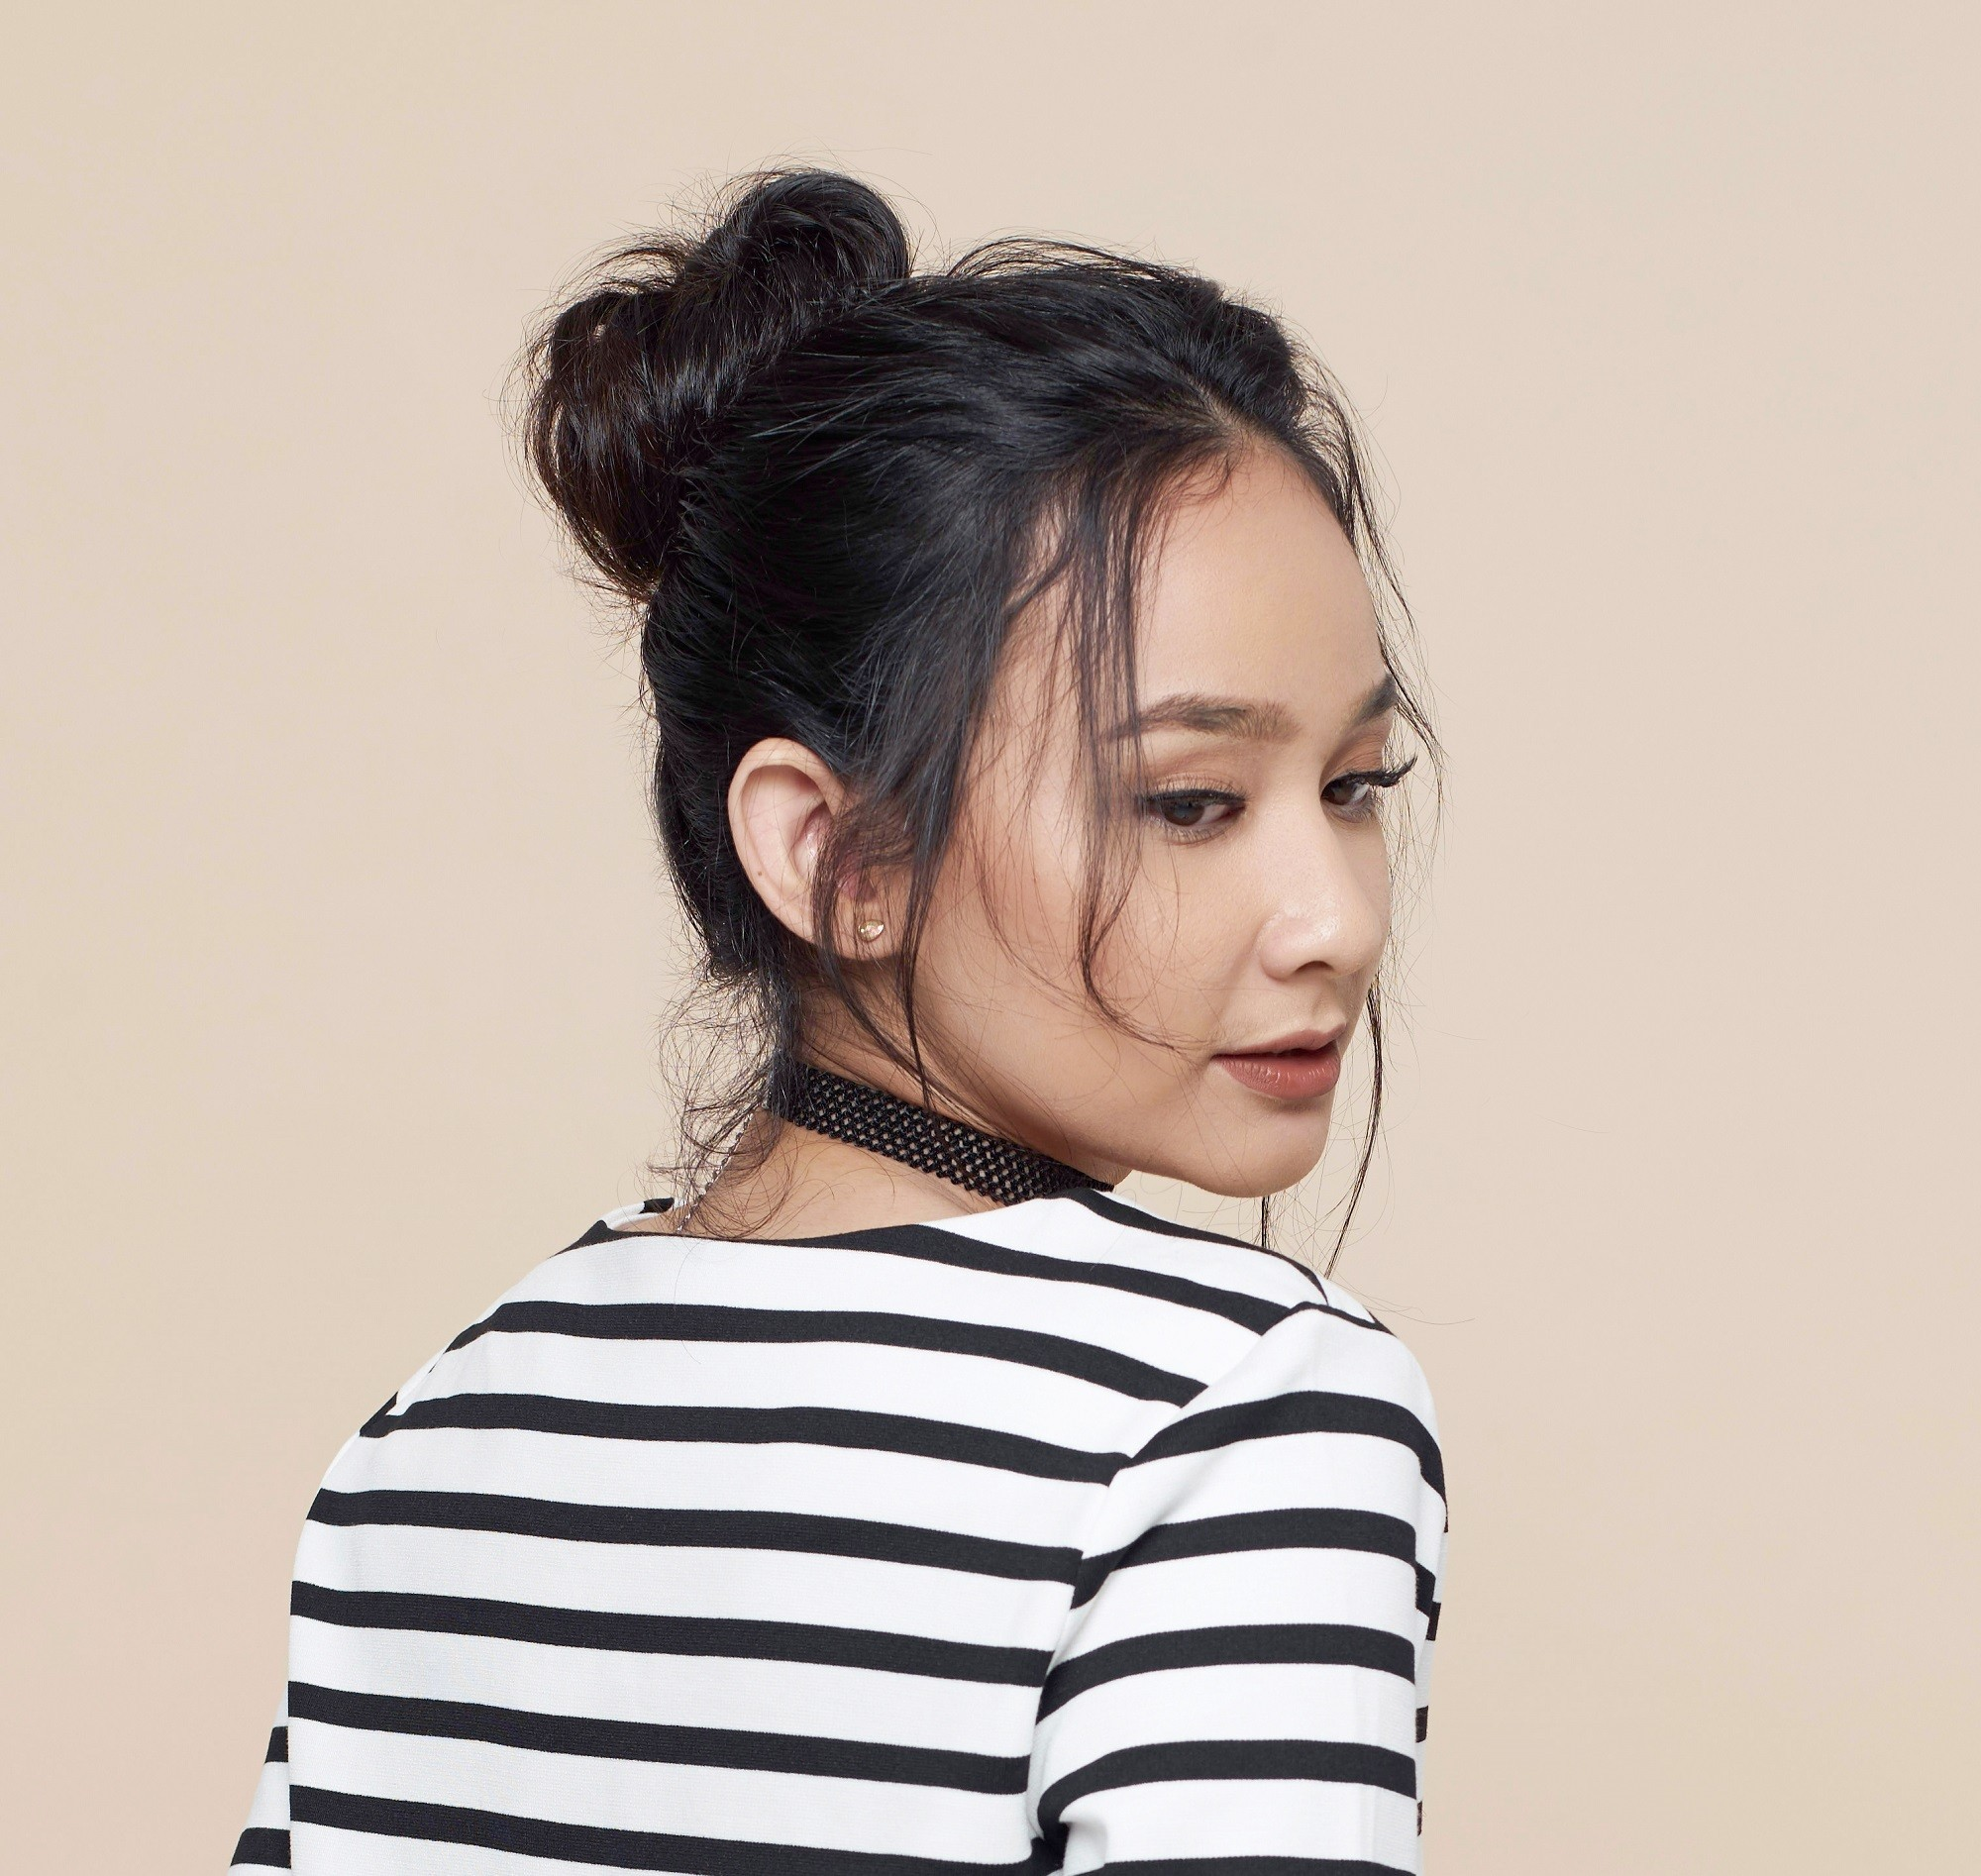 Frizy hairstyles: Closeup shot of an Asian woman with long black hair in a messy bun